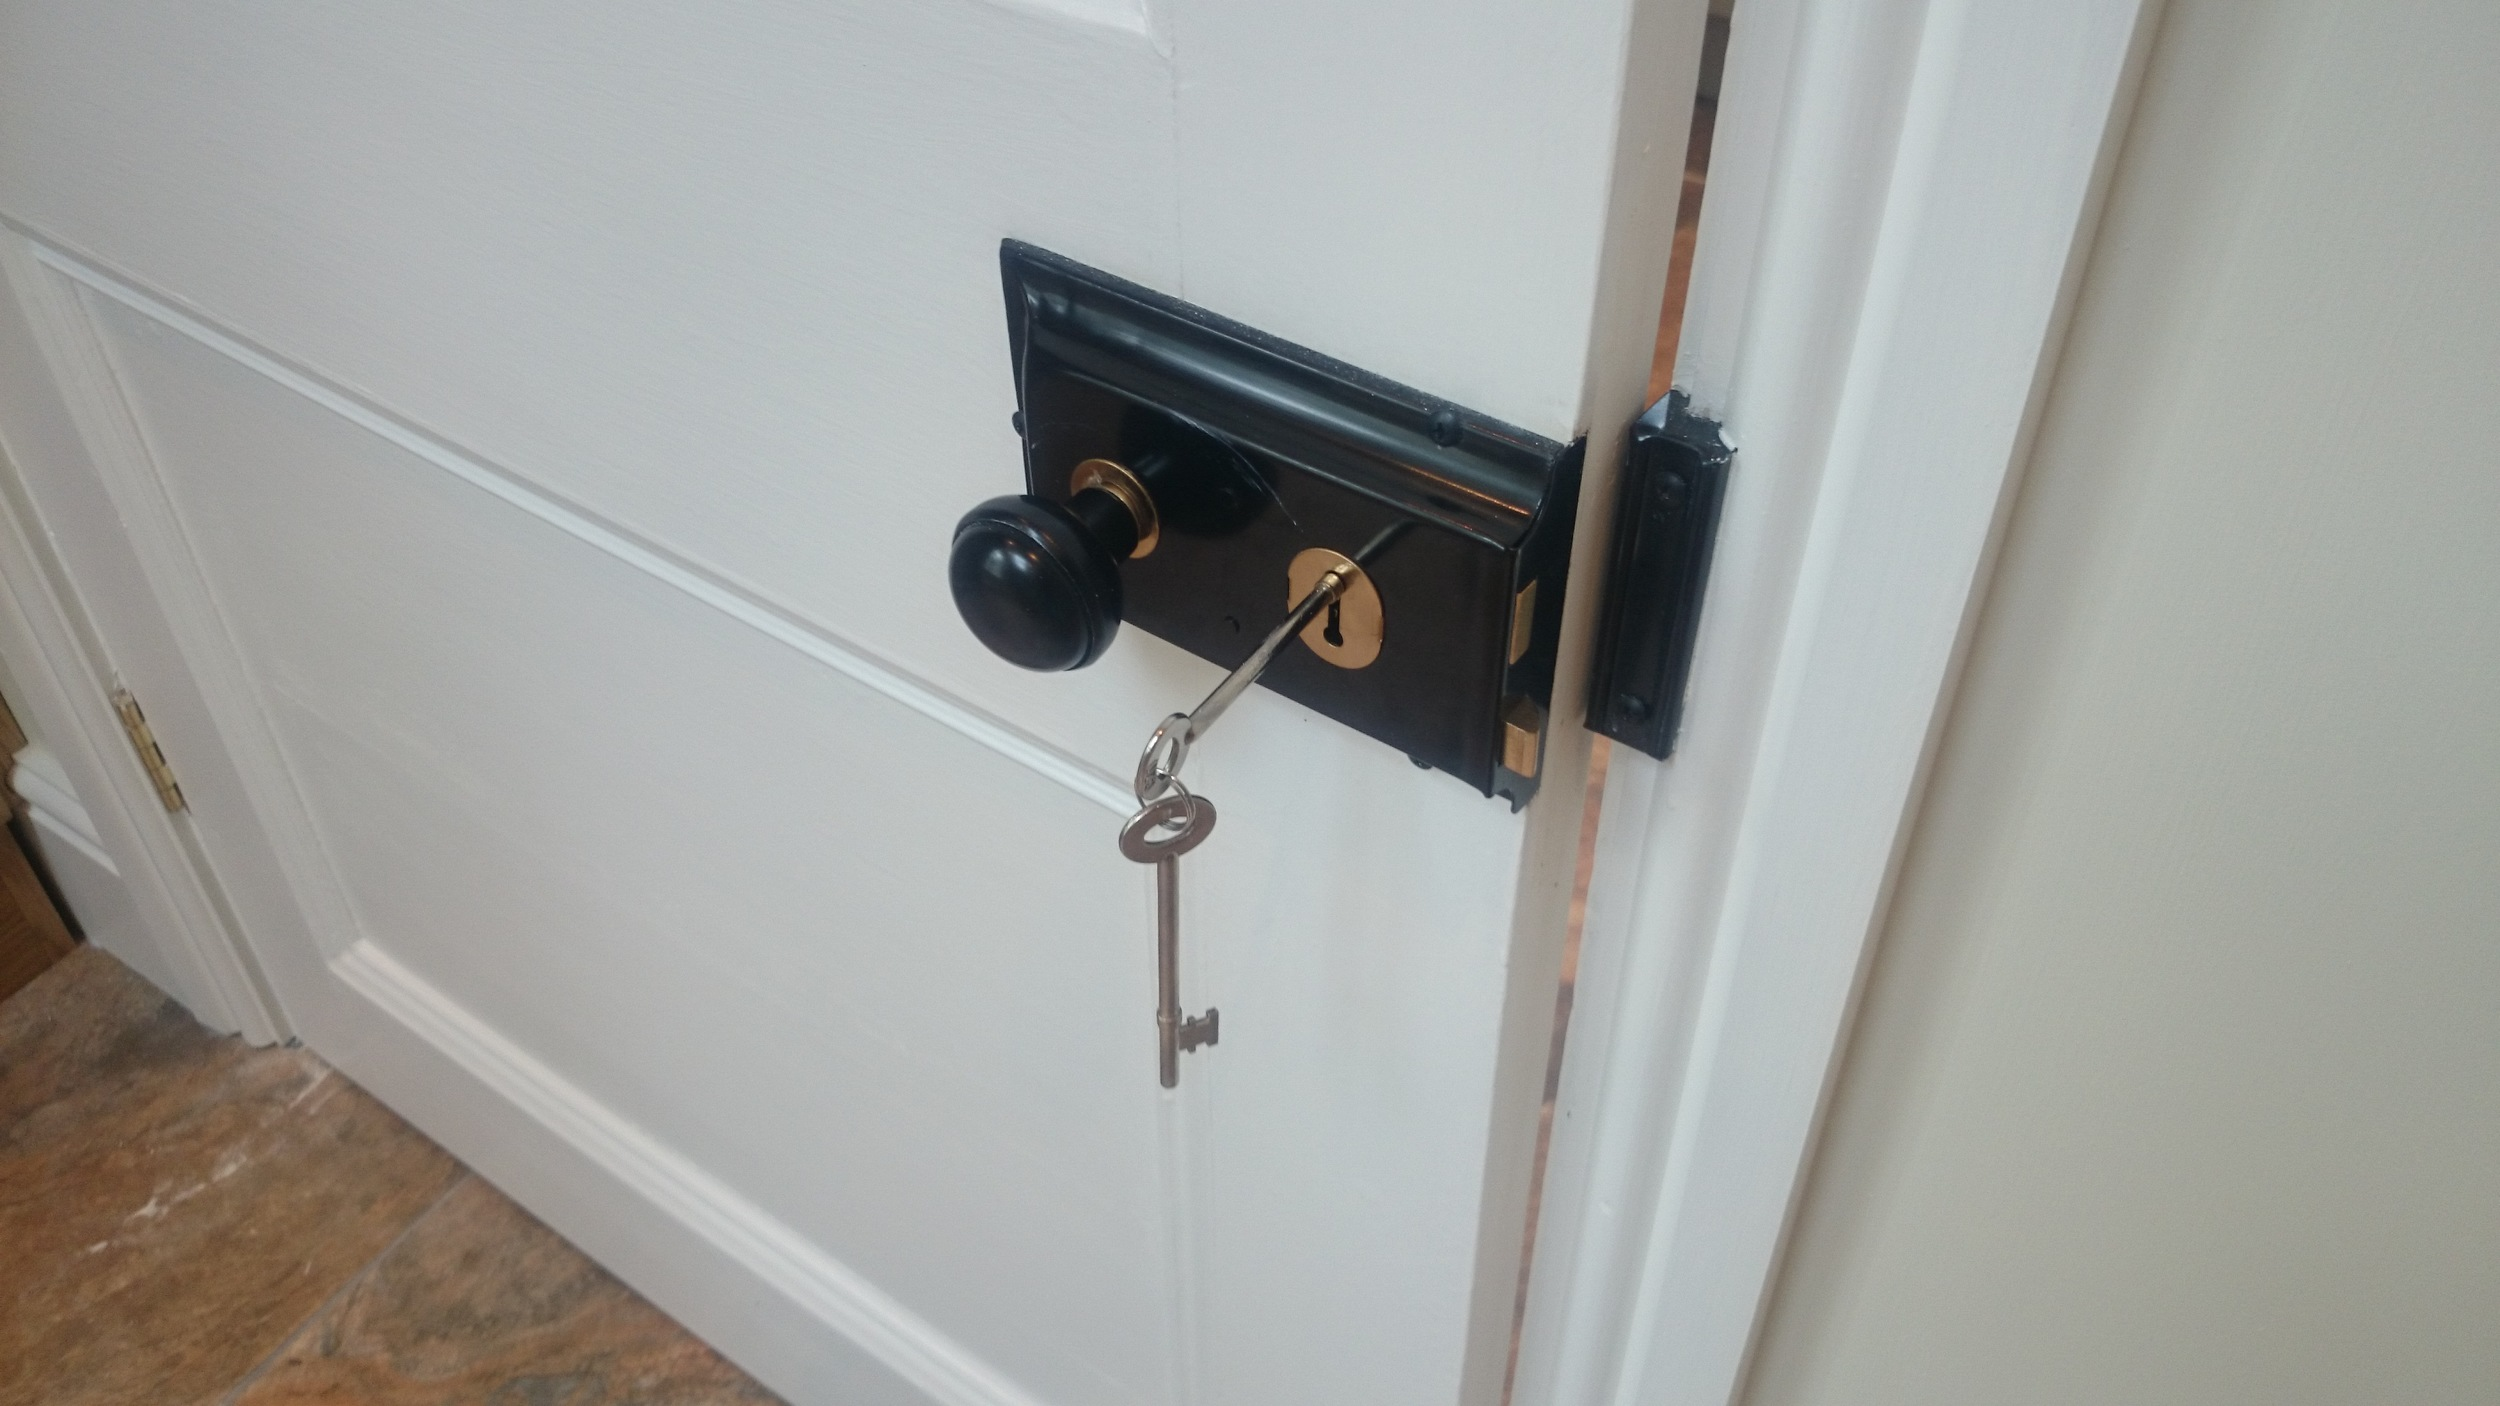 Period door lock